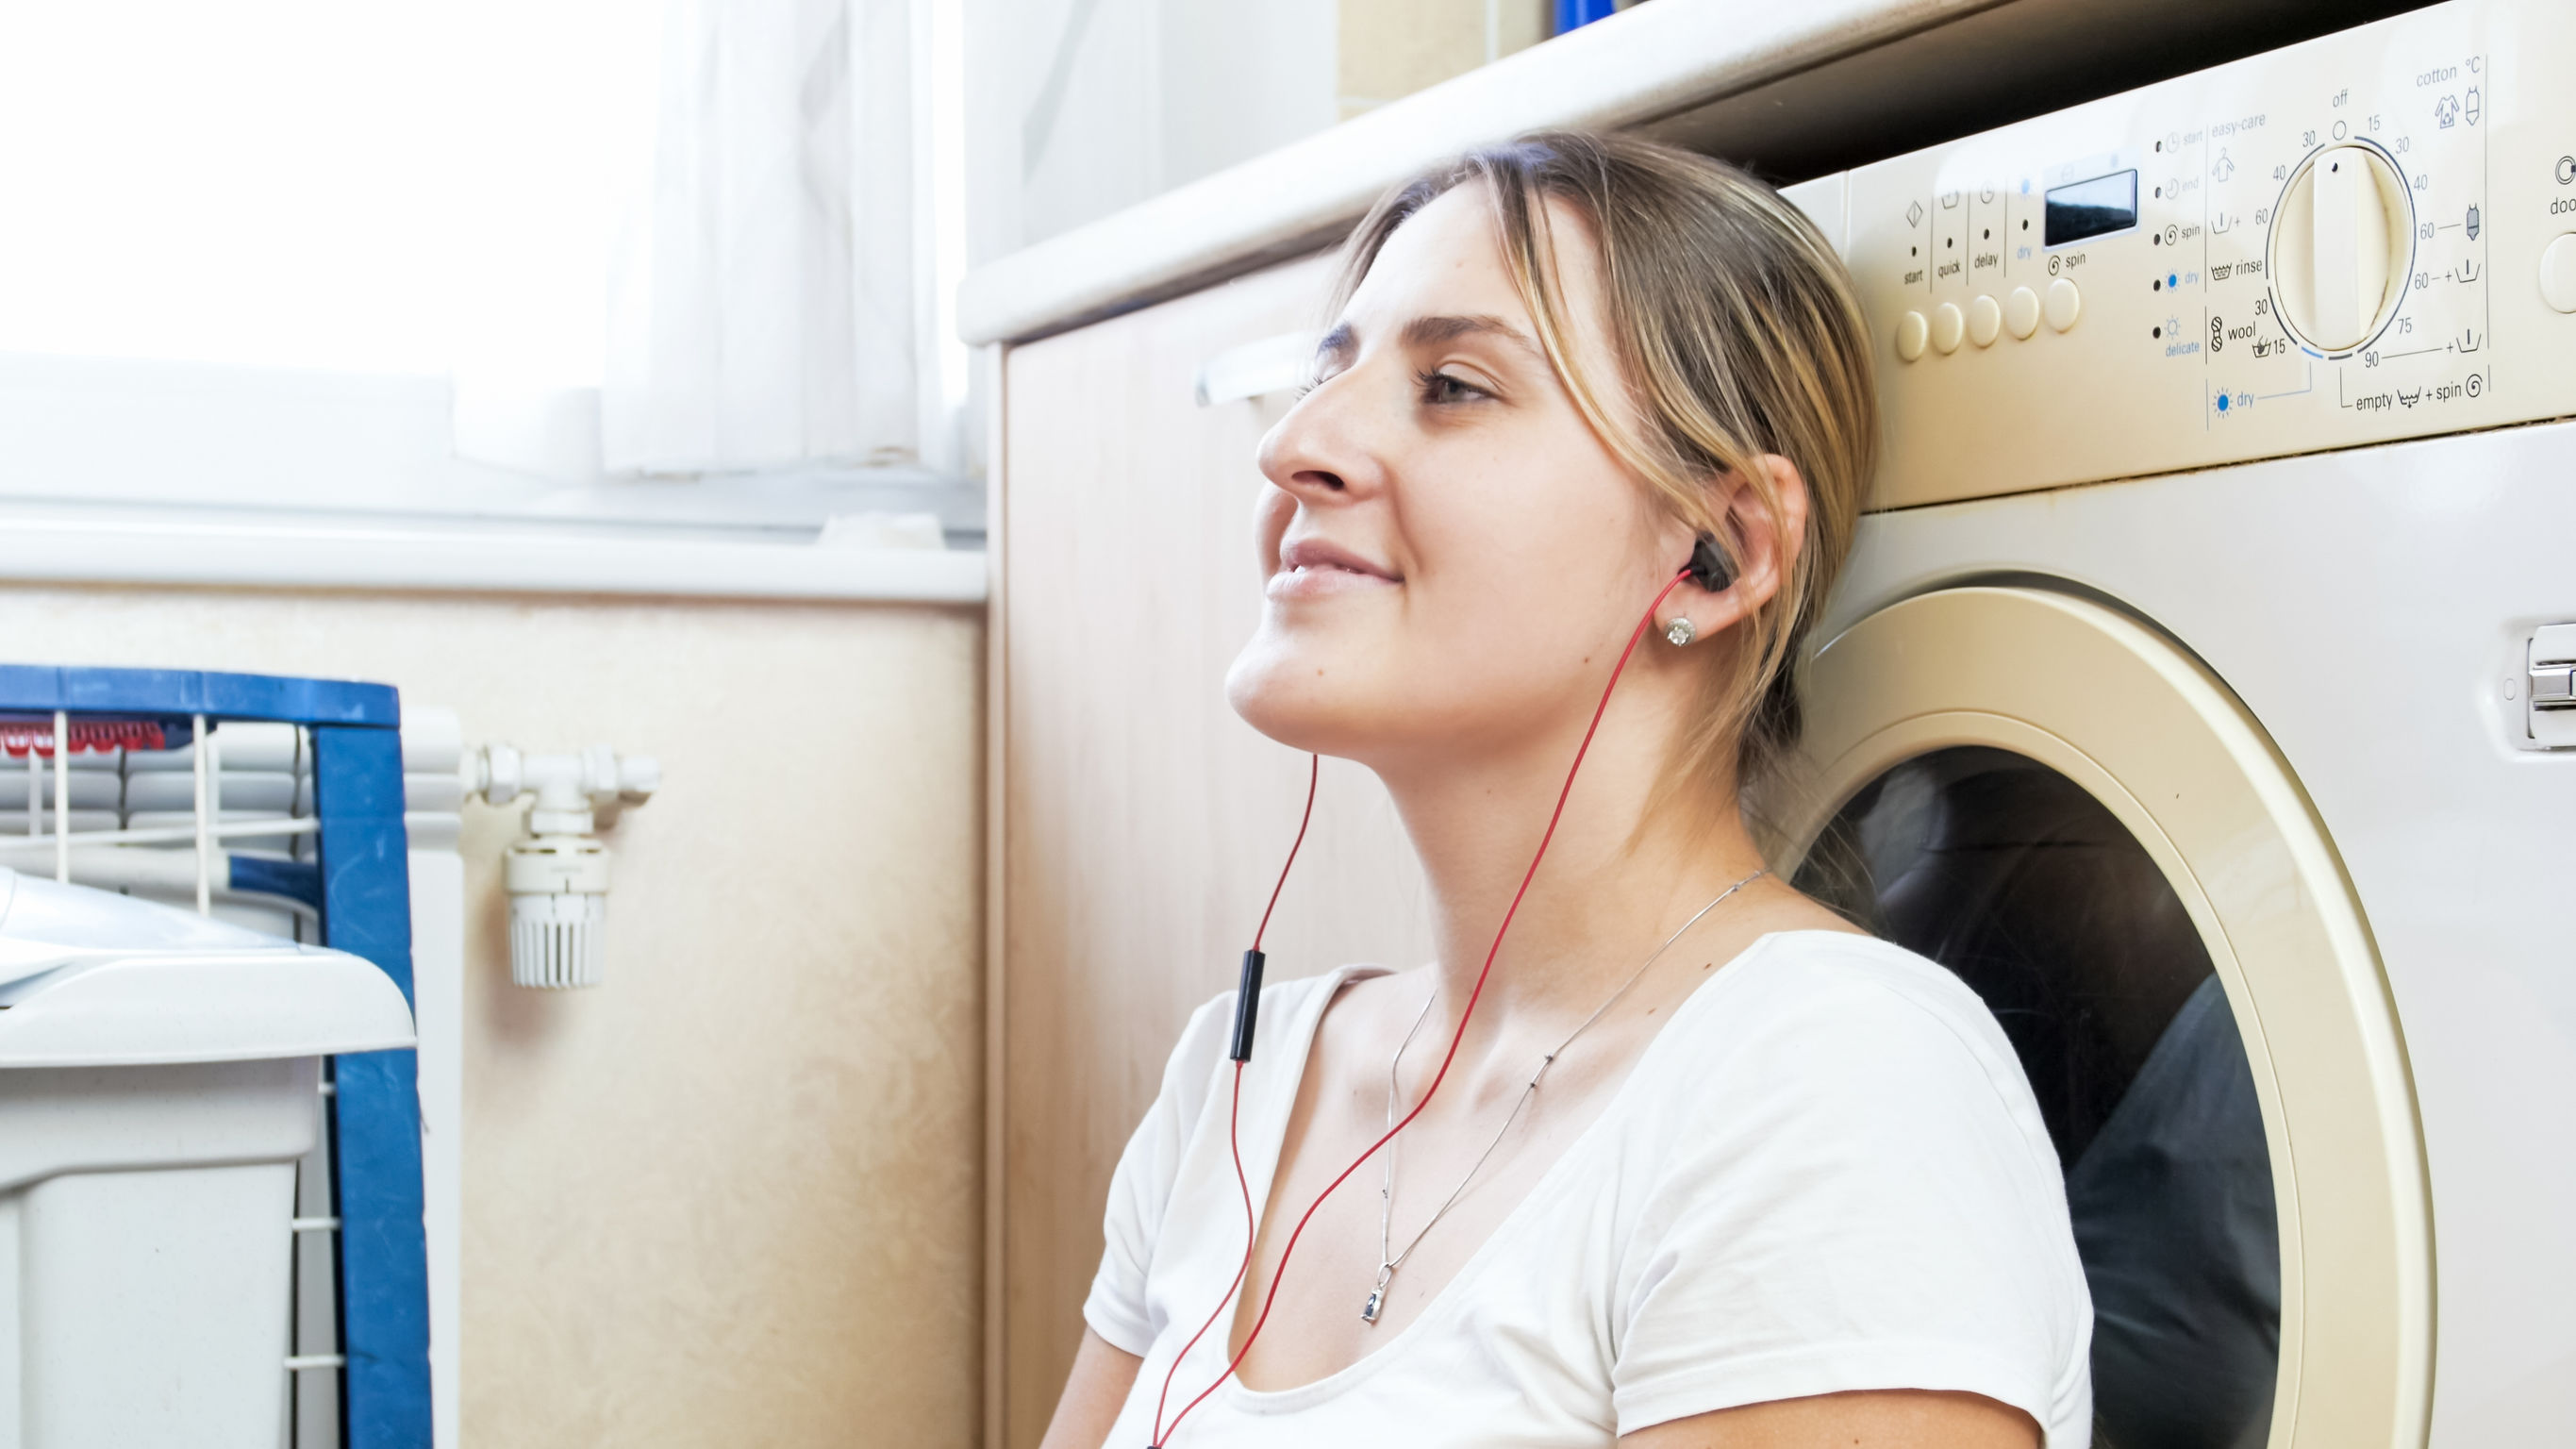 Portrait of beautiful housewife with earphones leaning on washing machine at laundry